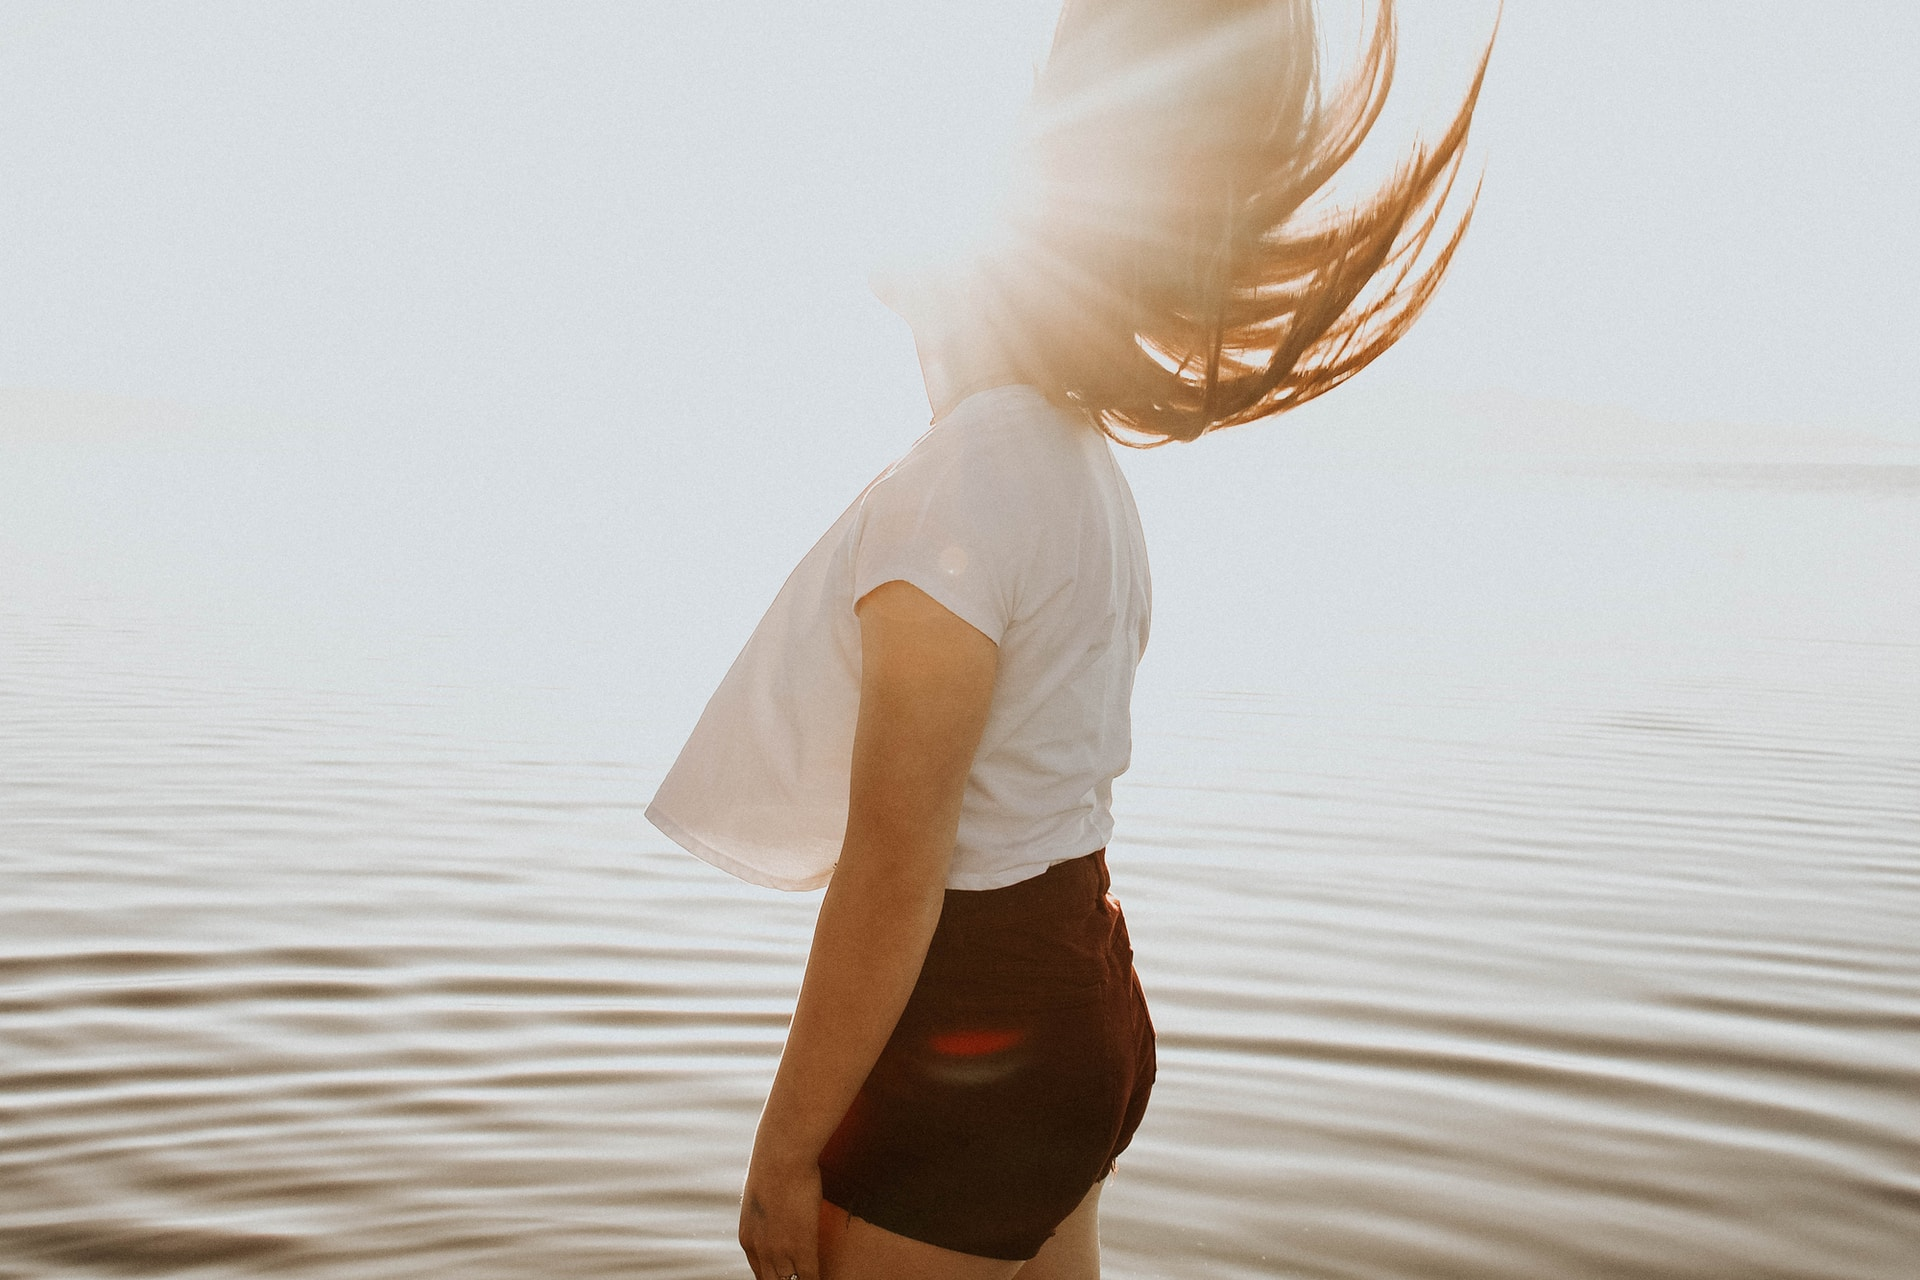 woman standing in body of water